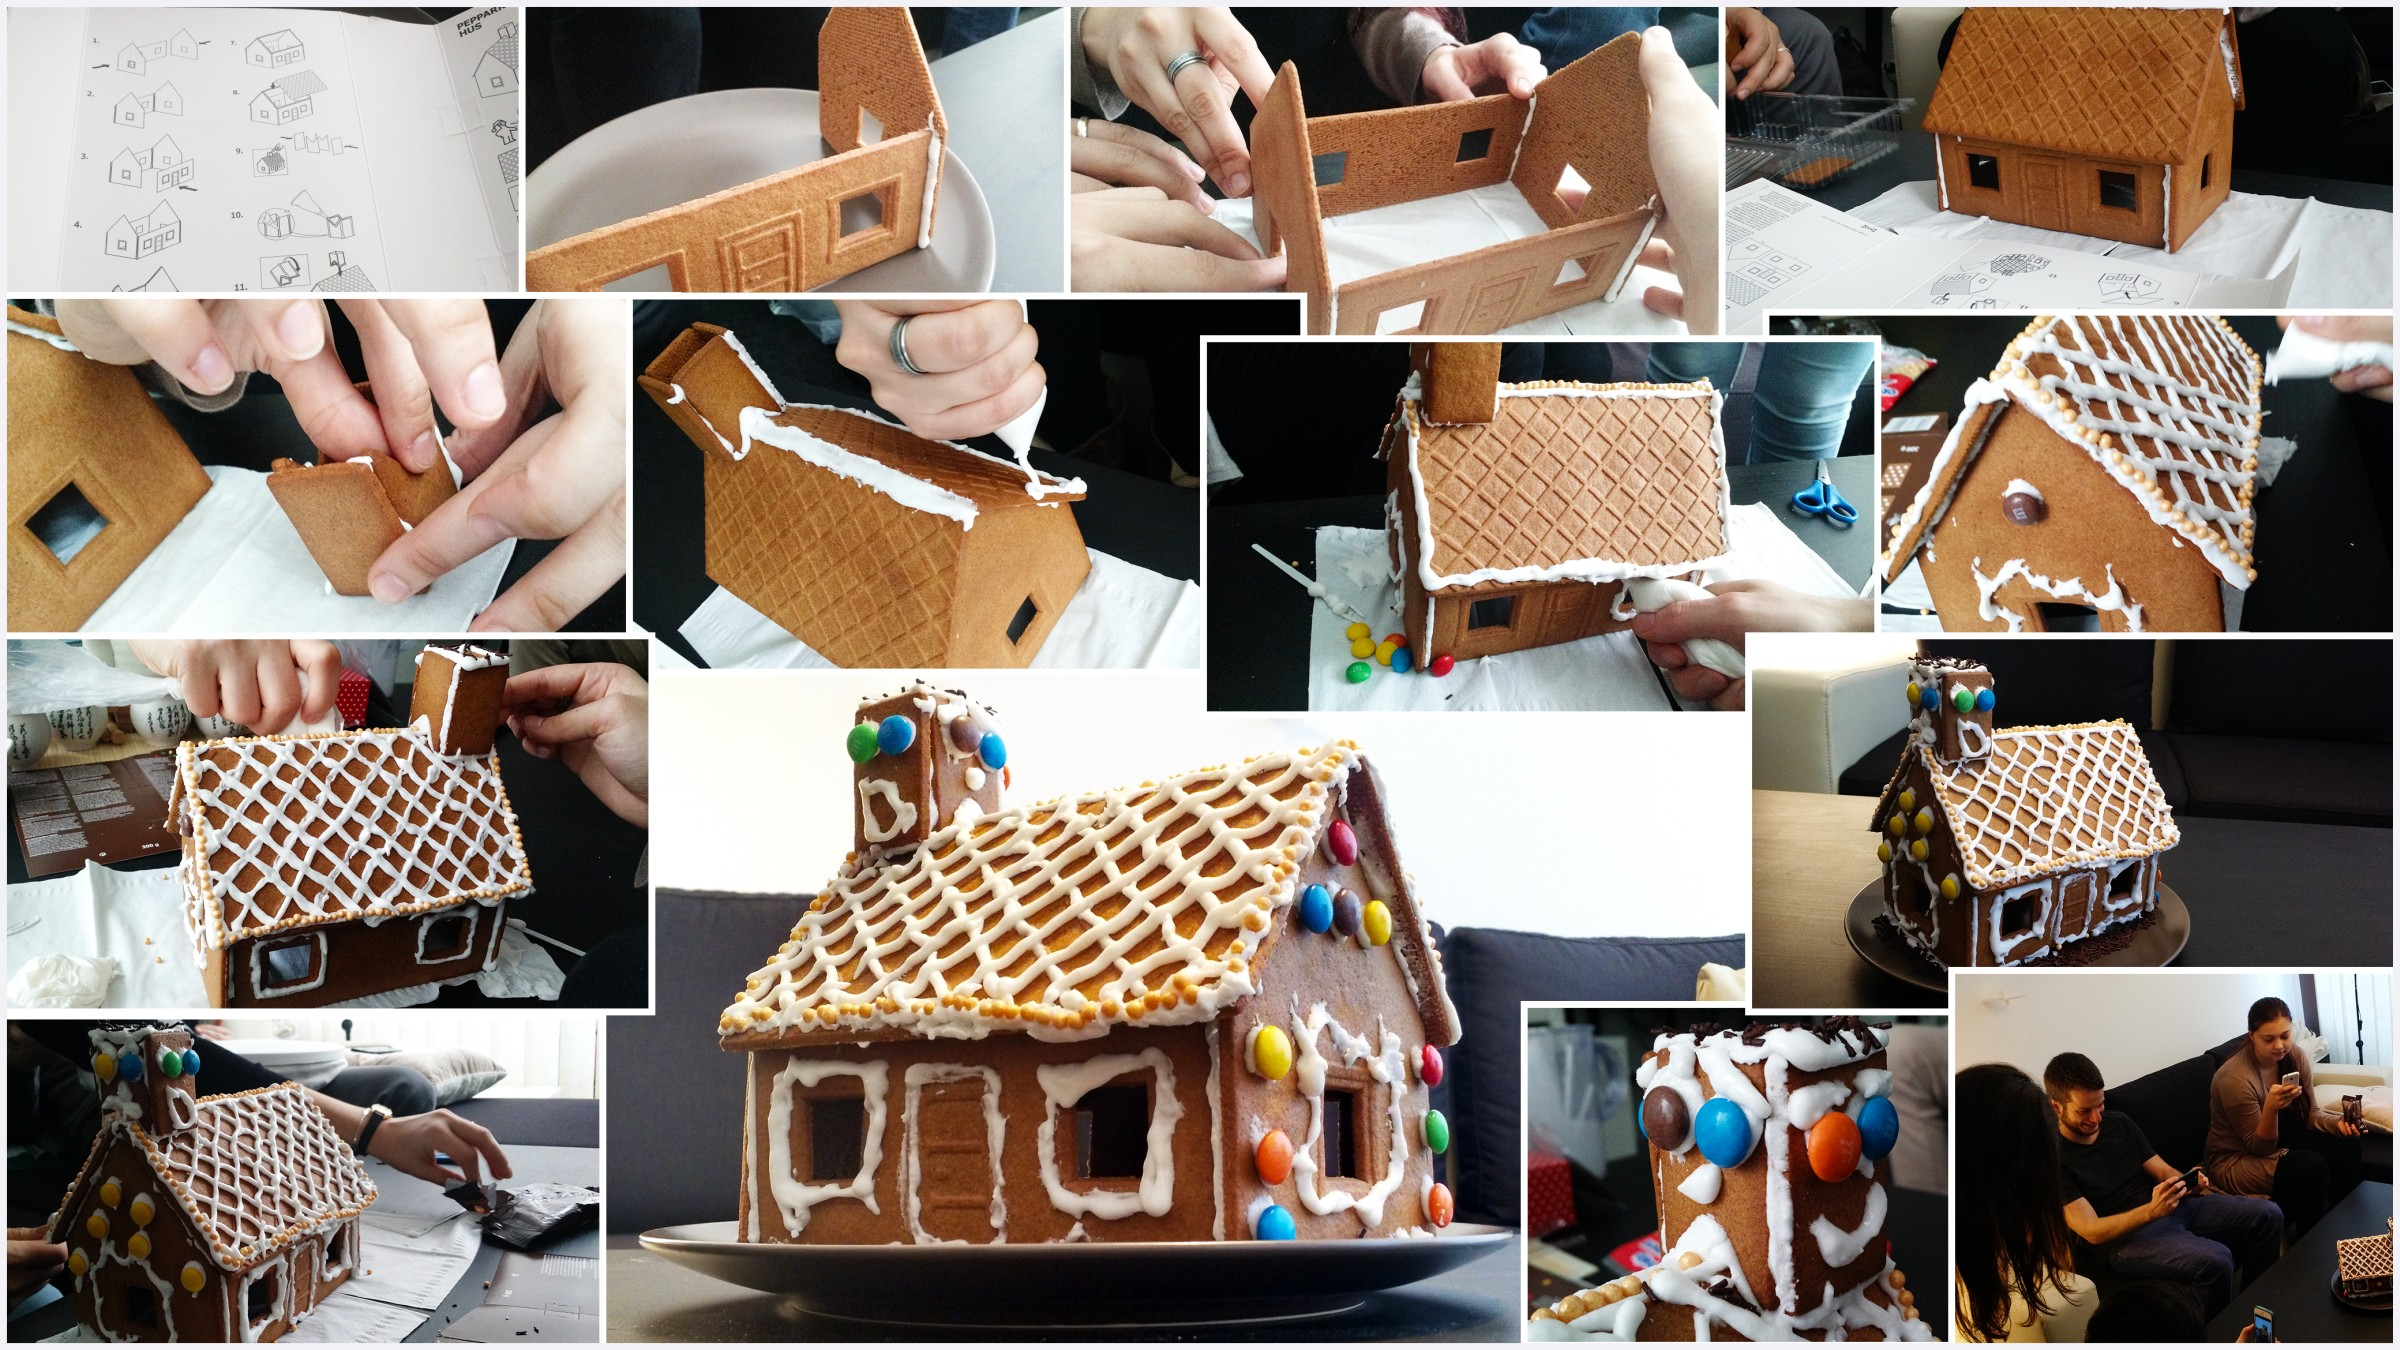 building mobile apps and gingerbread houses @Cobalt Sign